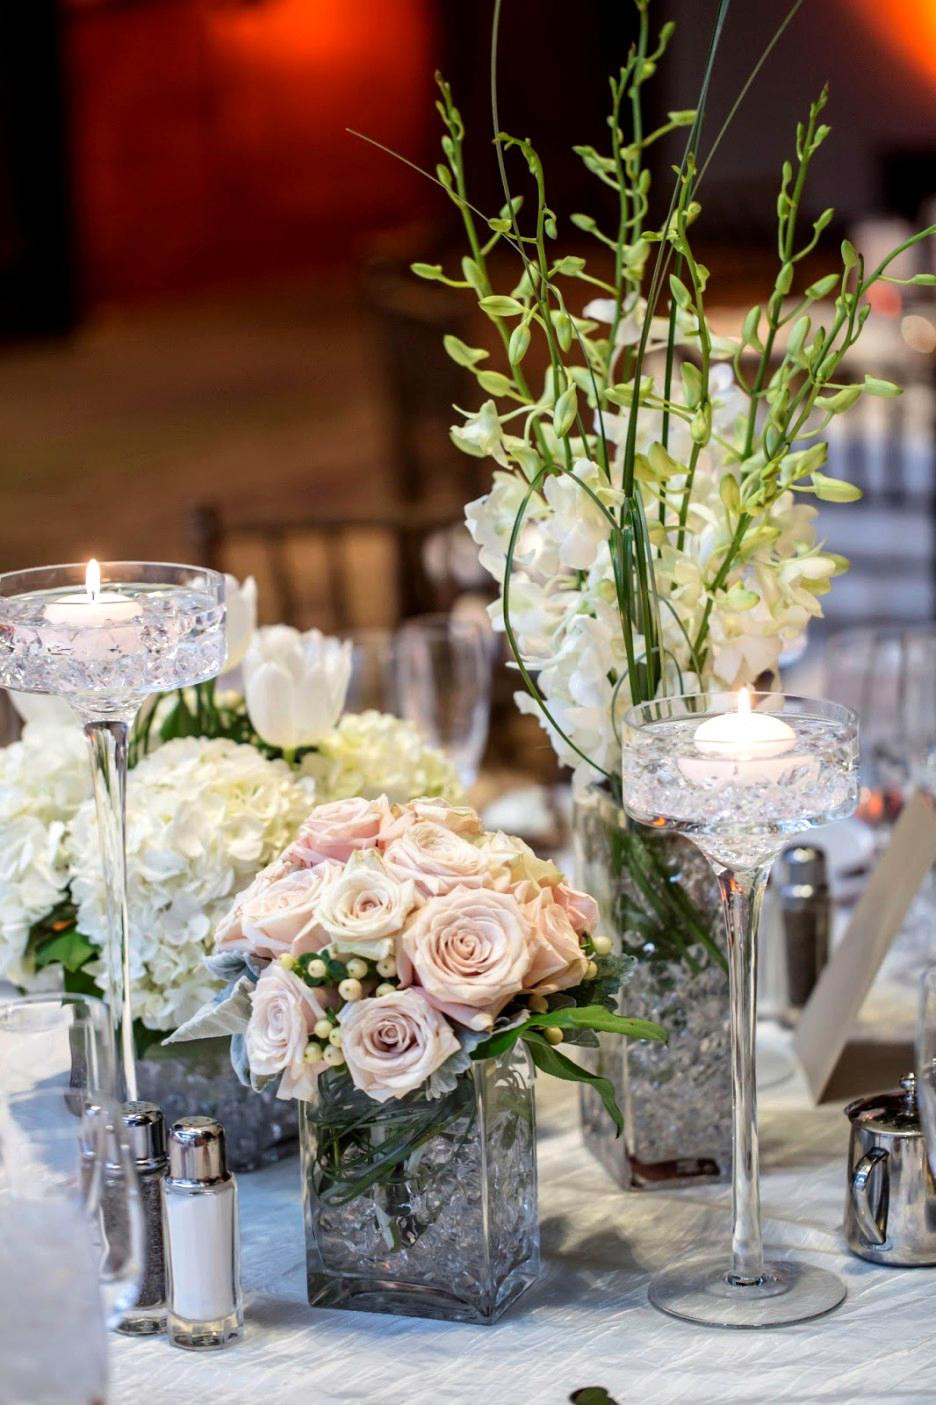 21 Wonderful Tall Cylinder Vases for Wedding Centerpieces